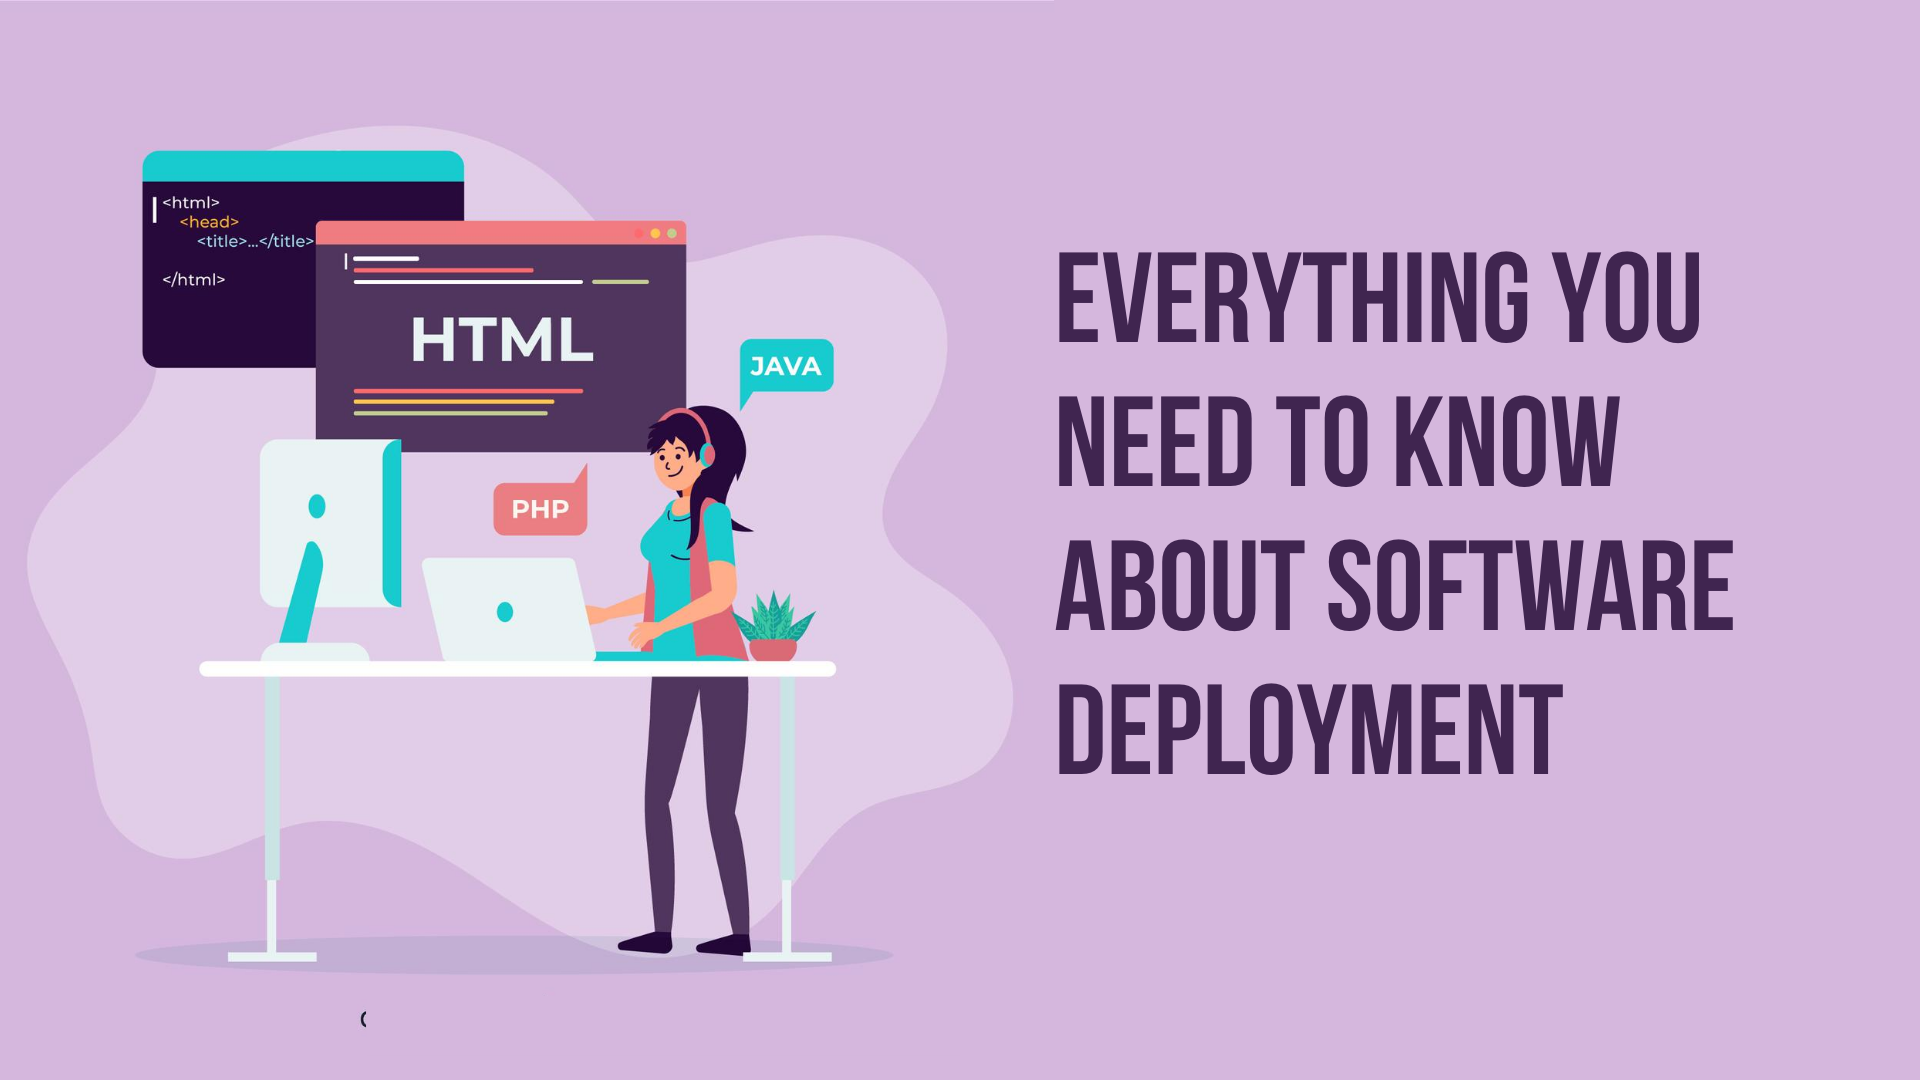 Everything You Need to Know About Software Deployment